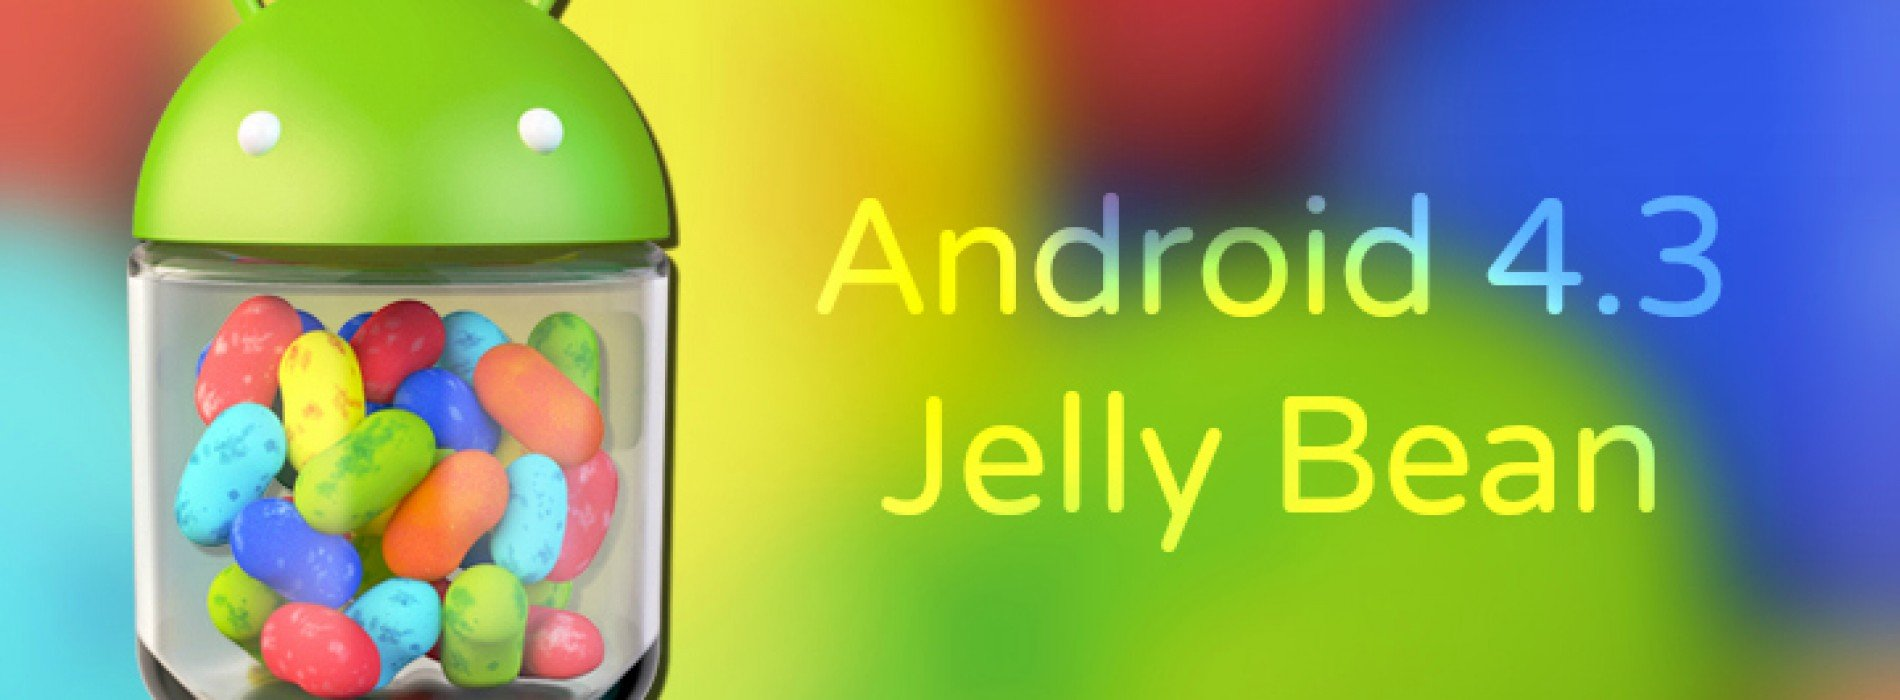 Google officially introduces Android 4.3